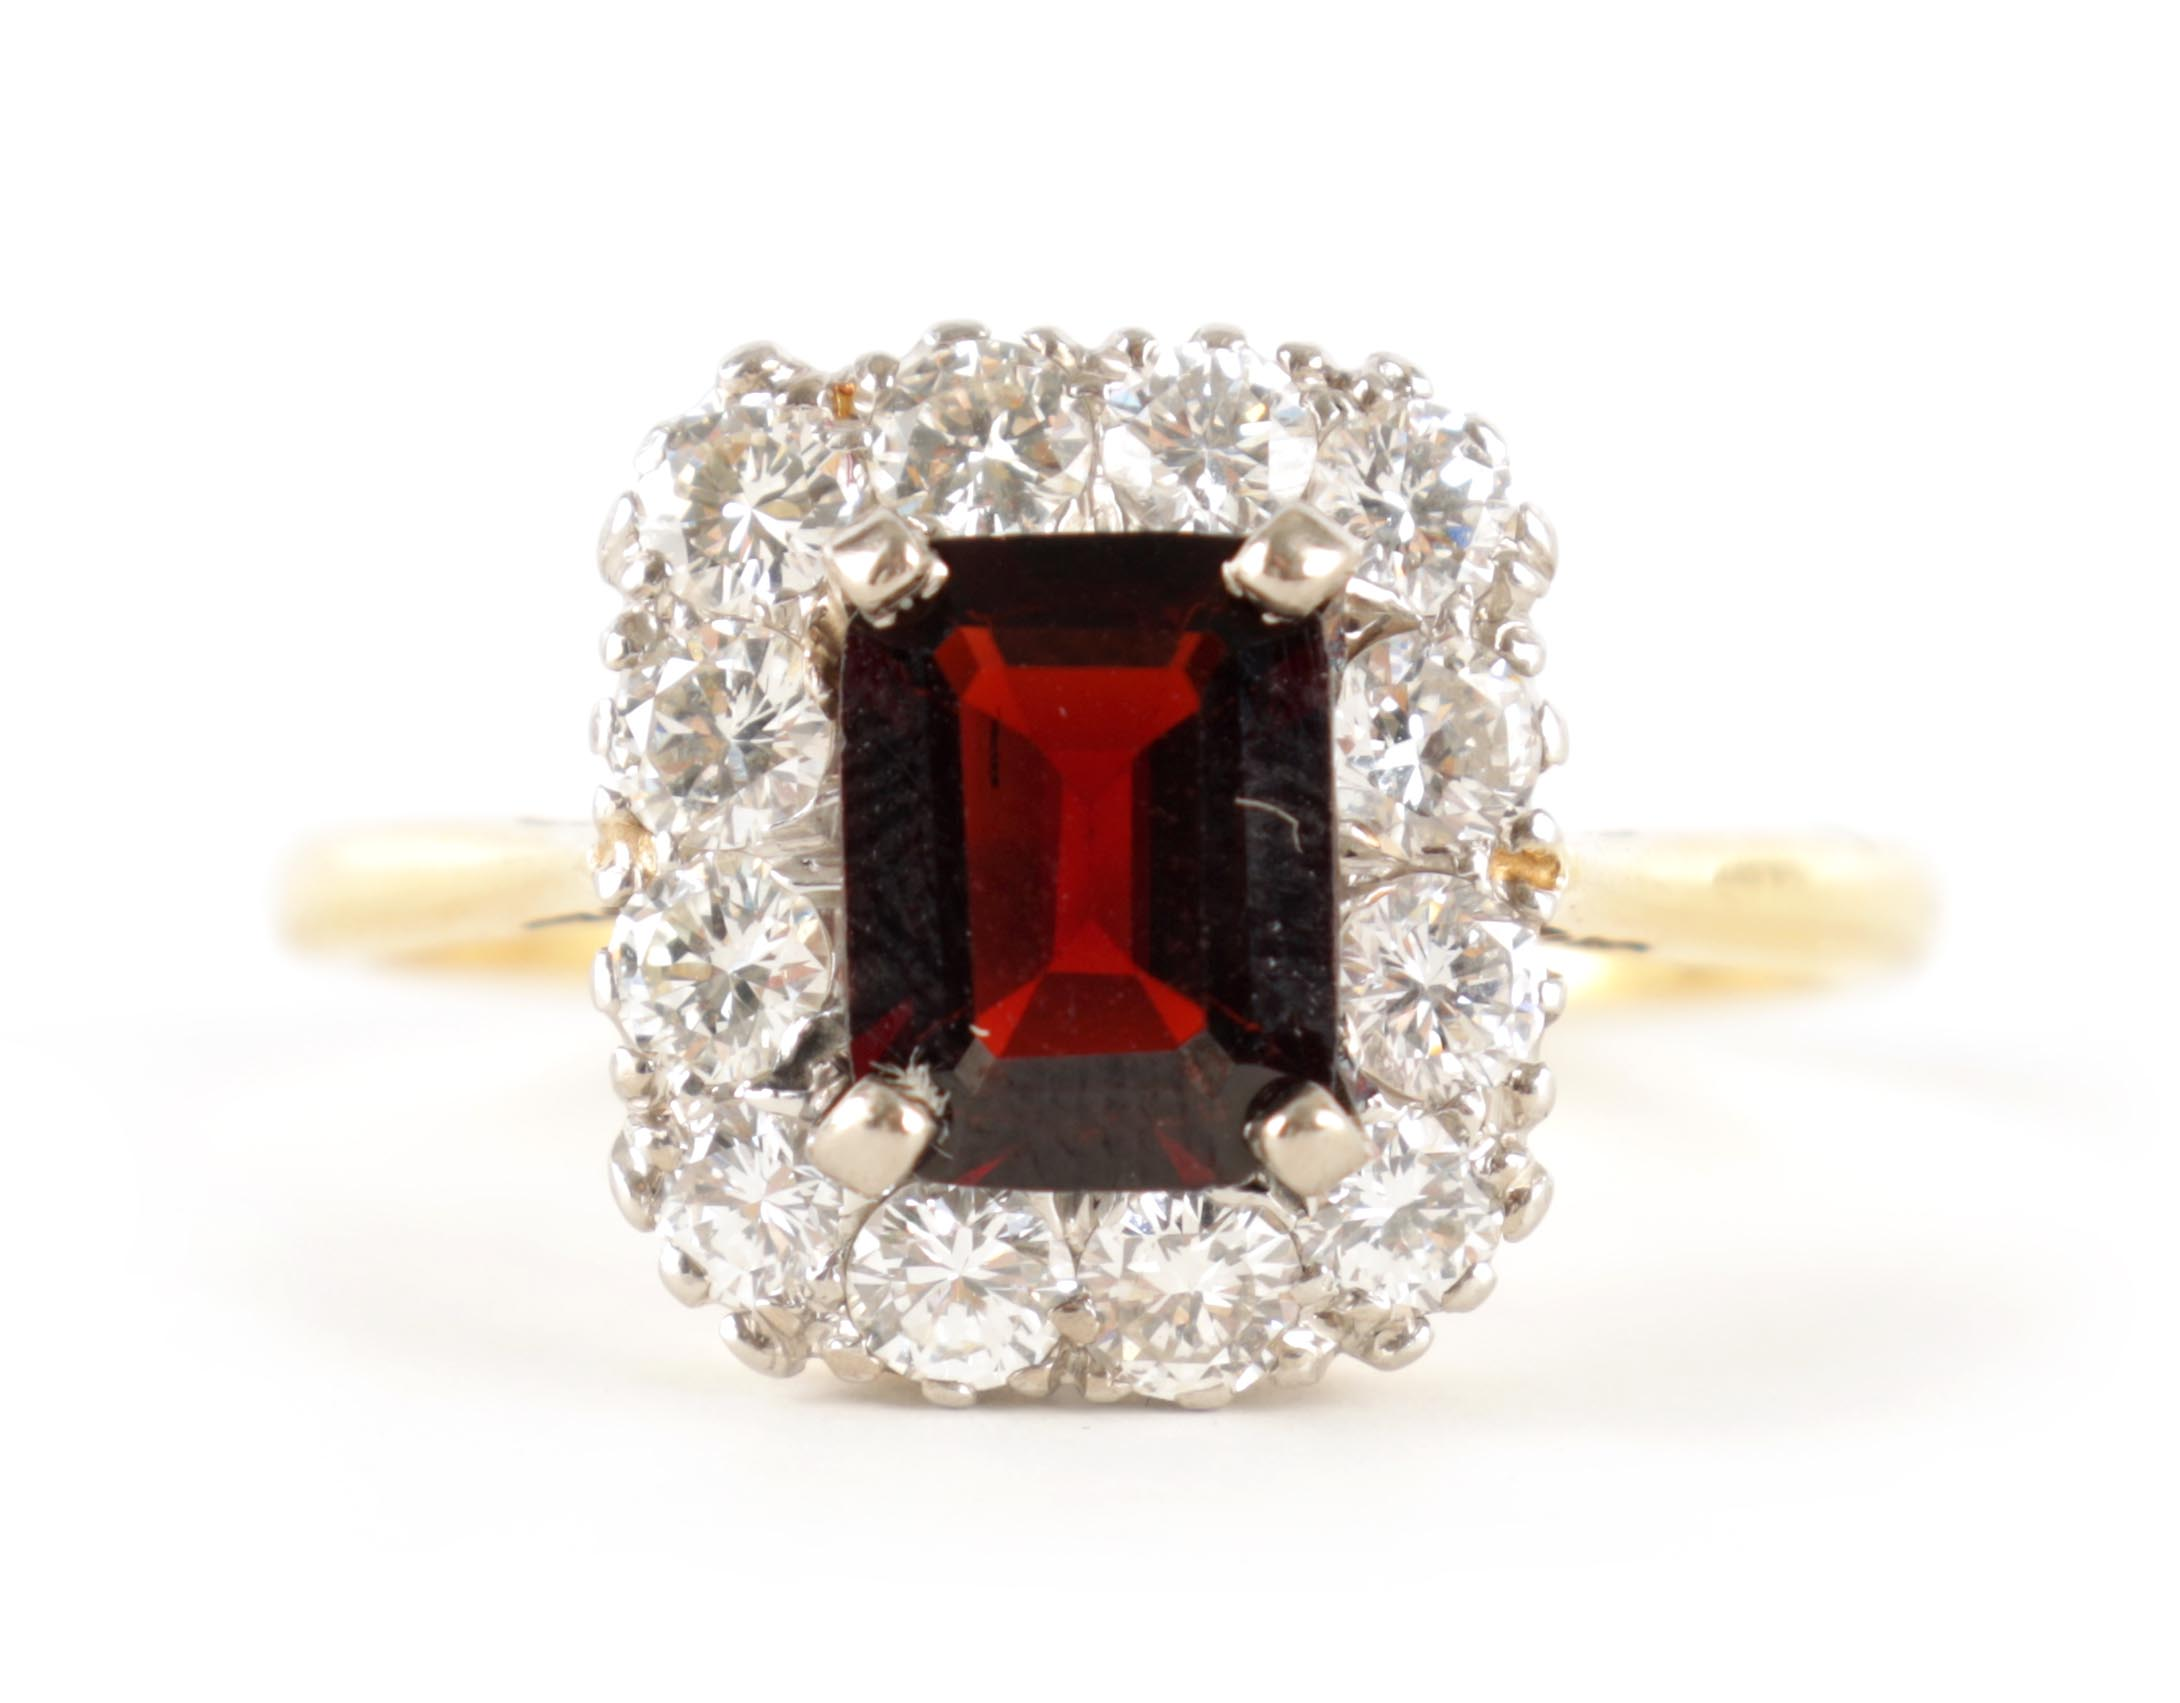 A LADIES 18CT GOLD AND PLATINUM RUBY AND DIAMOND RING with emerald cut ruby surrounded by 12